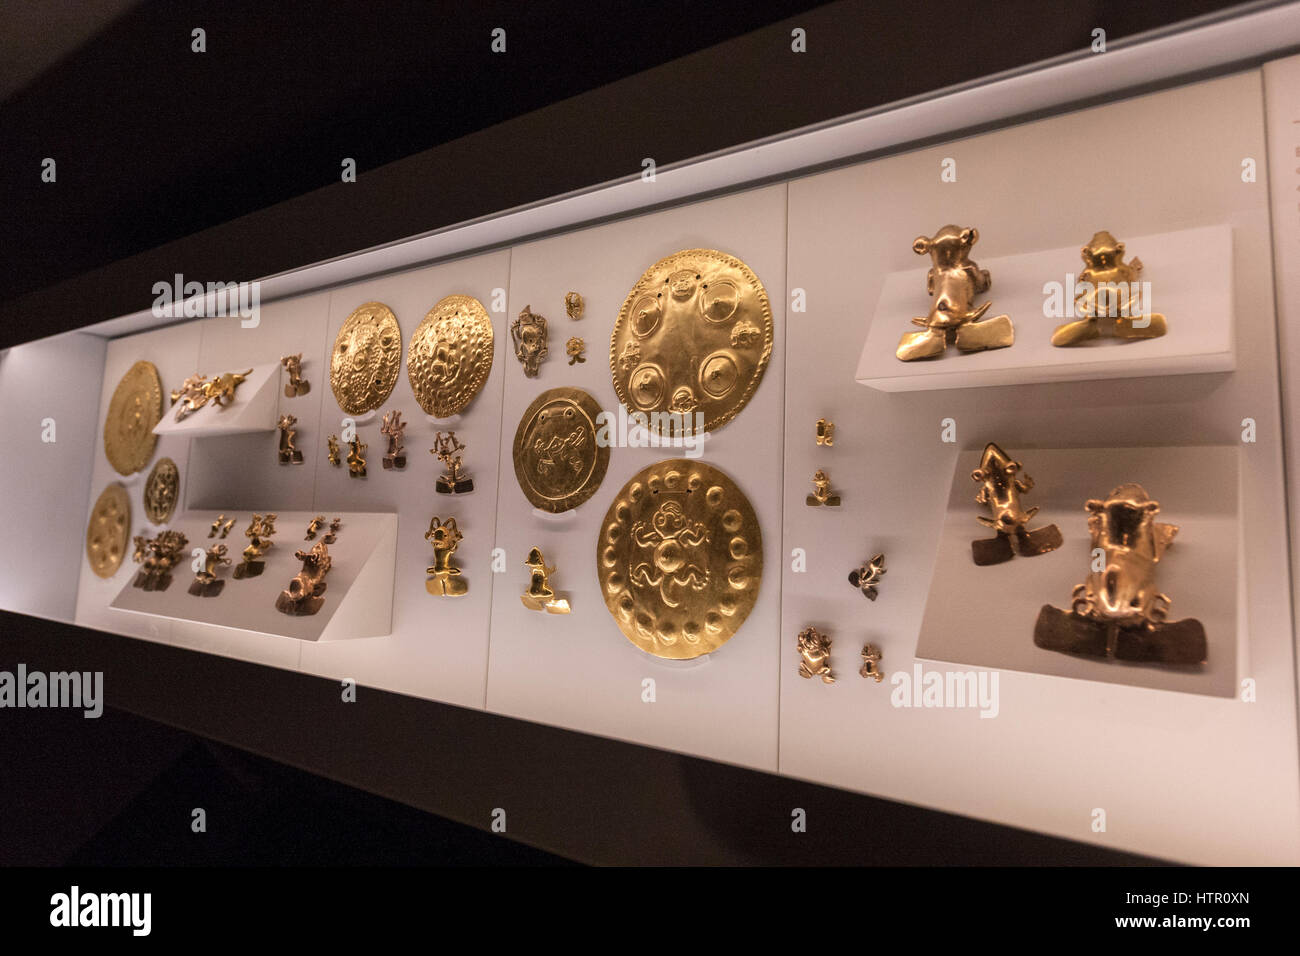 Pre-Columbian Gold Museum, San José, Costa Rica Stock Photo